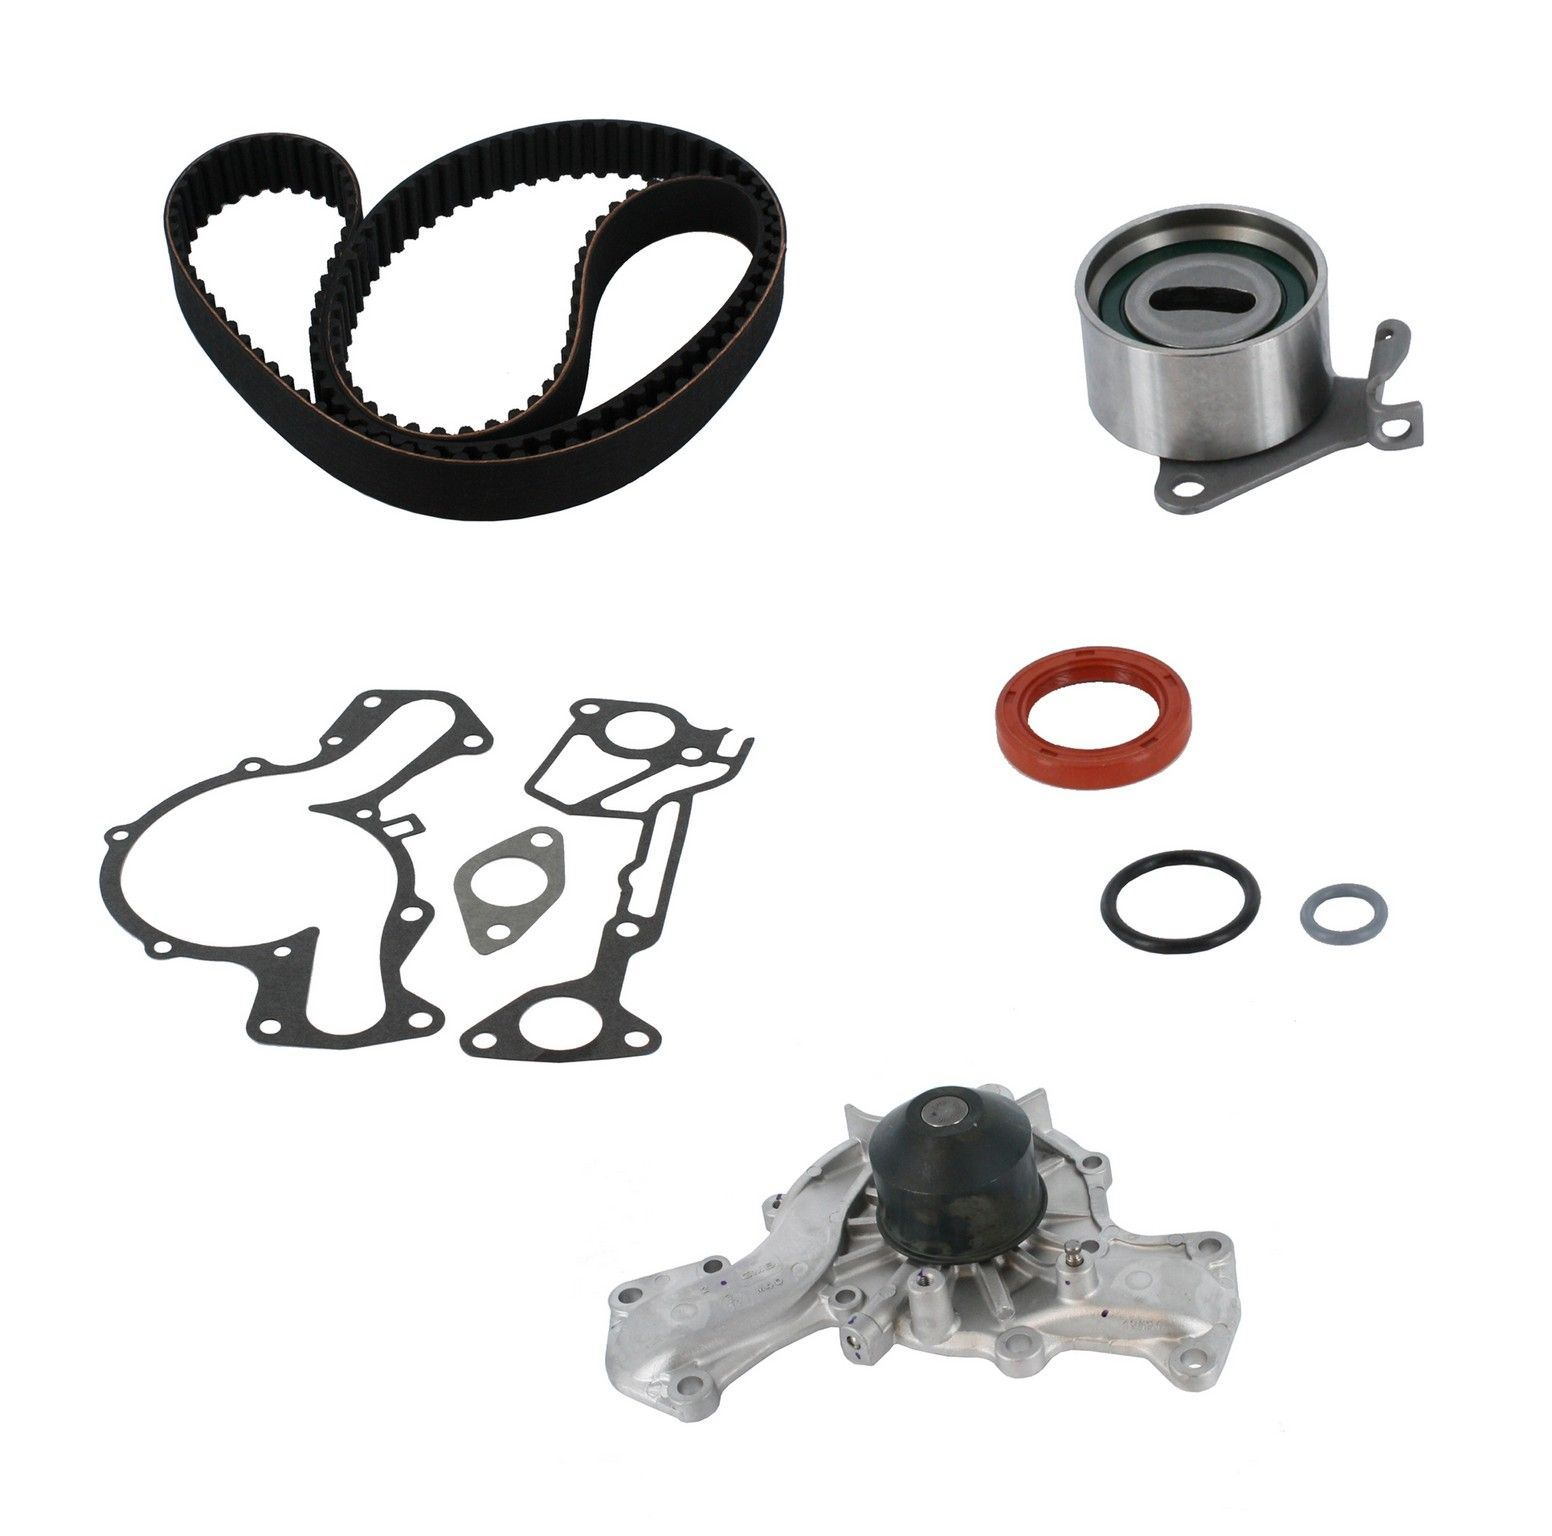 Engine Timing Belt Kit With Water Pump Replacement Airtex Aisin 1998 Nissan Quest Hyundai Sonata 6 Cyl 30l Crp Pp139lk2 Pro Series Plus Contitech Interference Eng